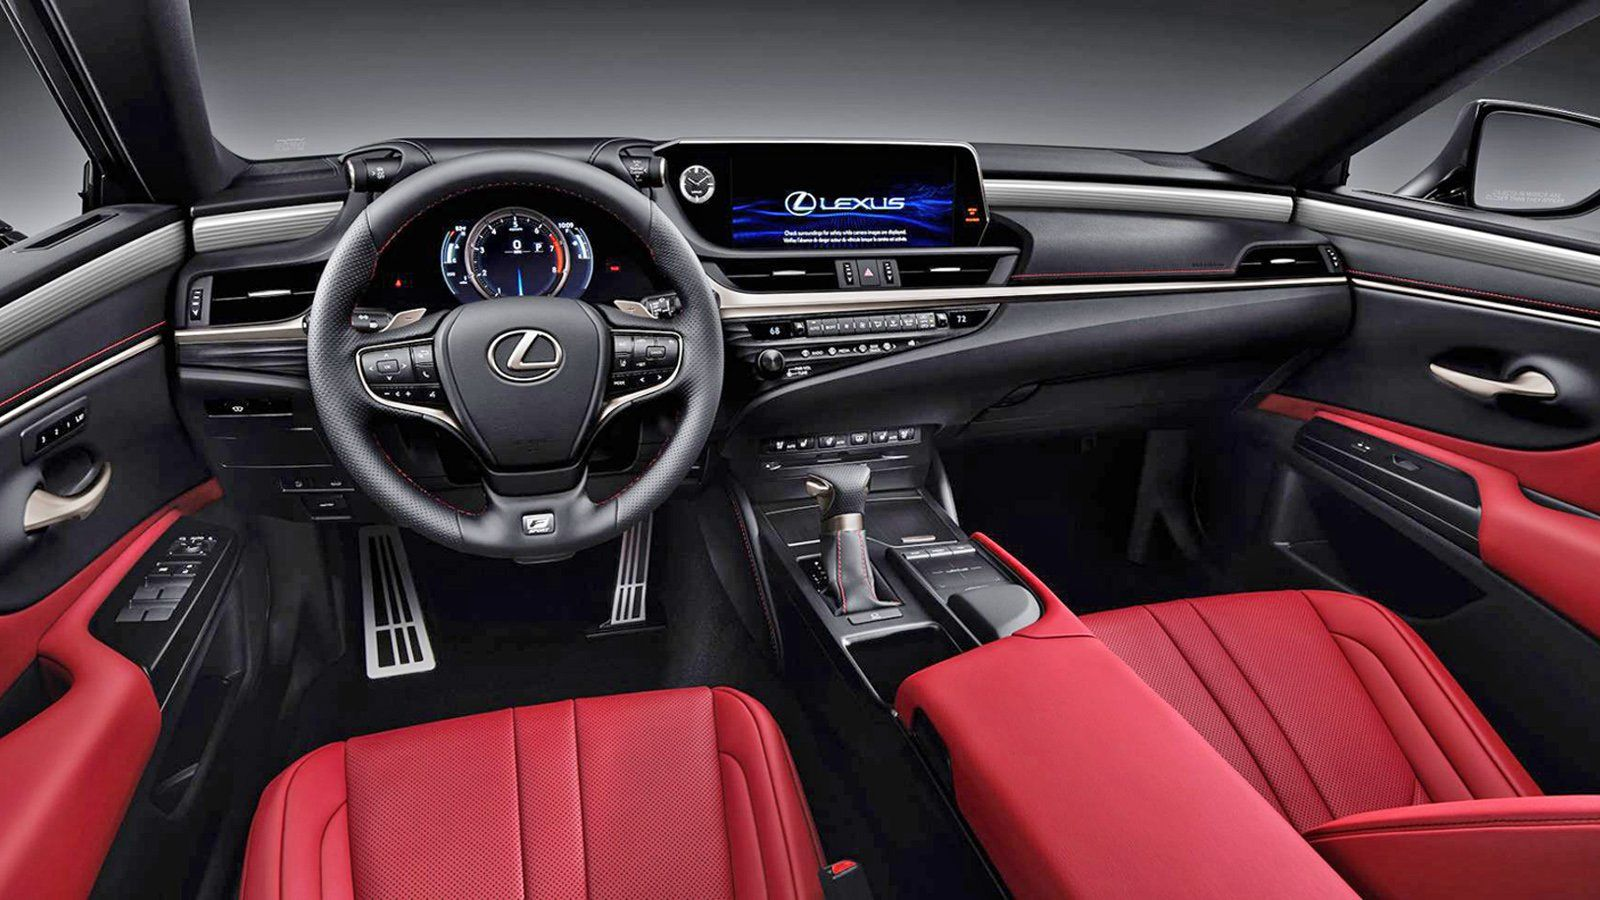 Australia To Receive Es 300h Fsport Come This Fall Clublexus Lexus Es Lexus Interior Lexus